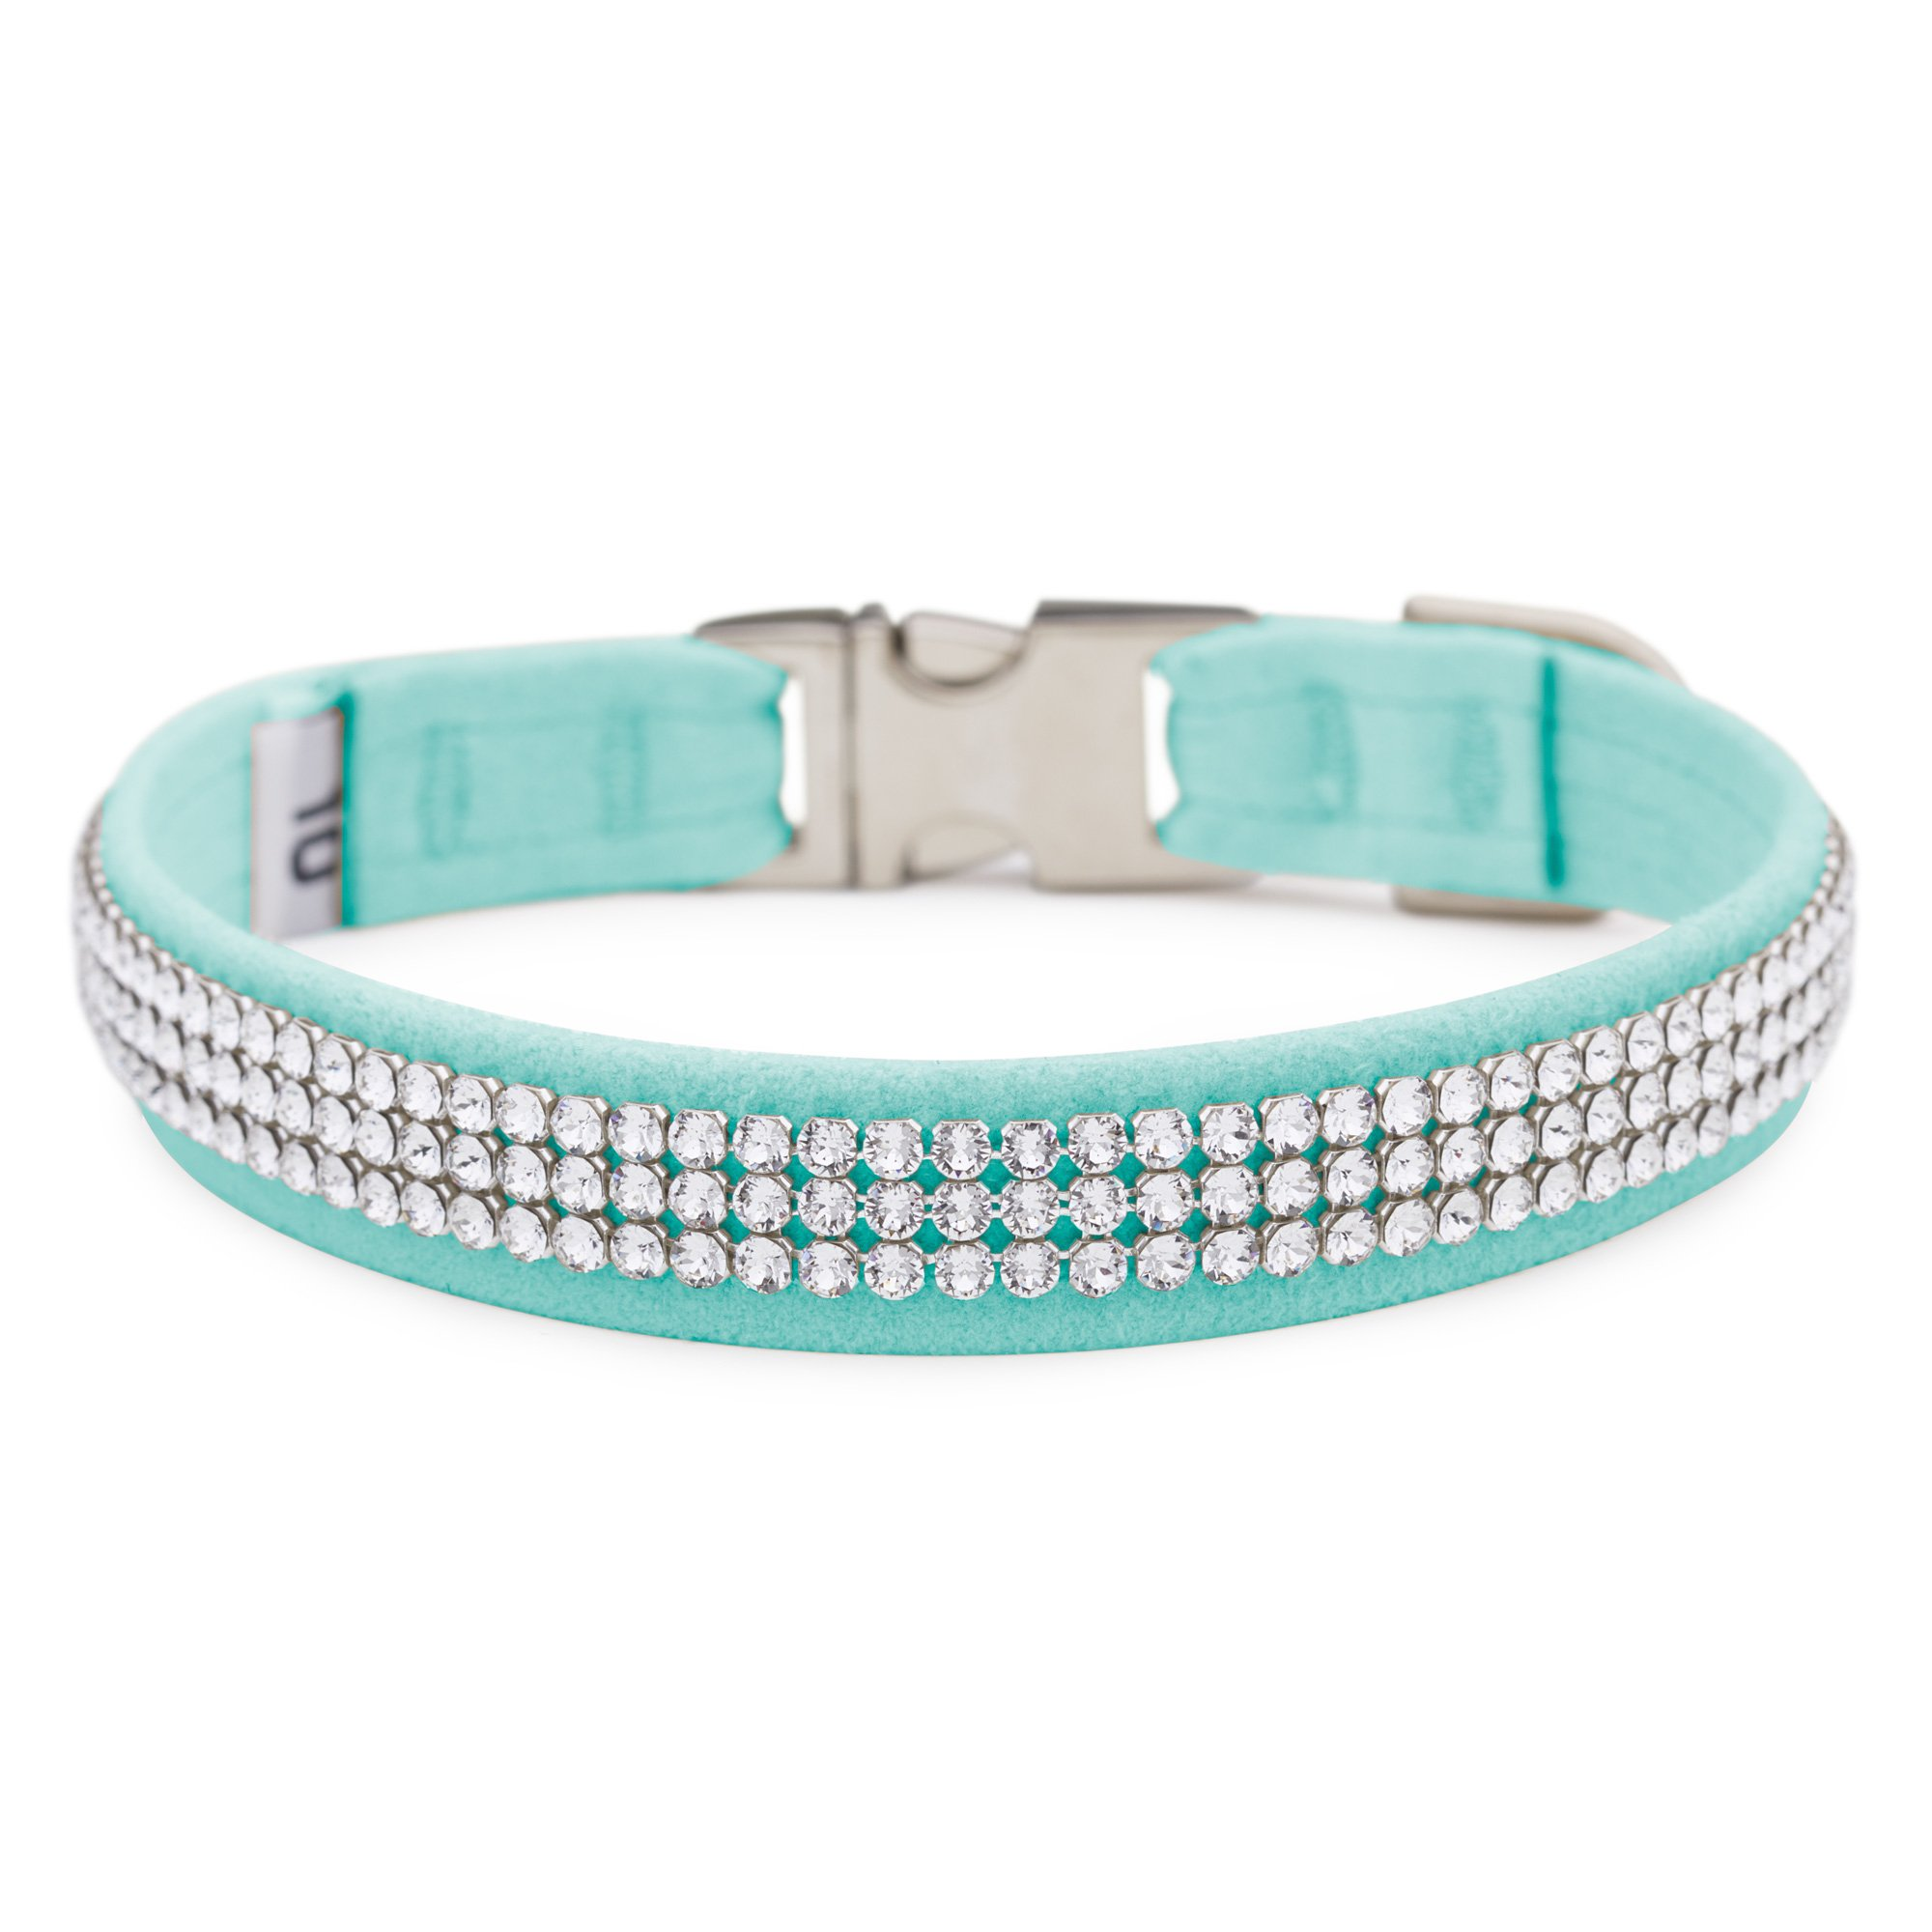 Tiffi Blue 3 Row Giltmore Perfect Fit Collar